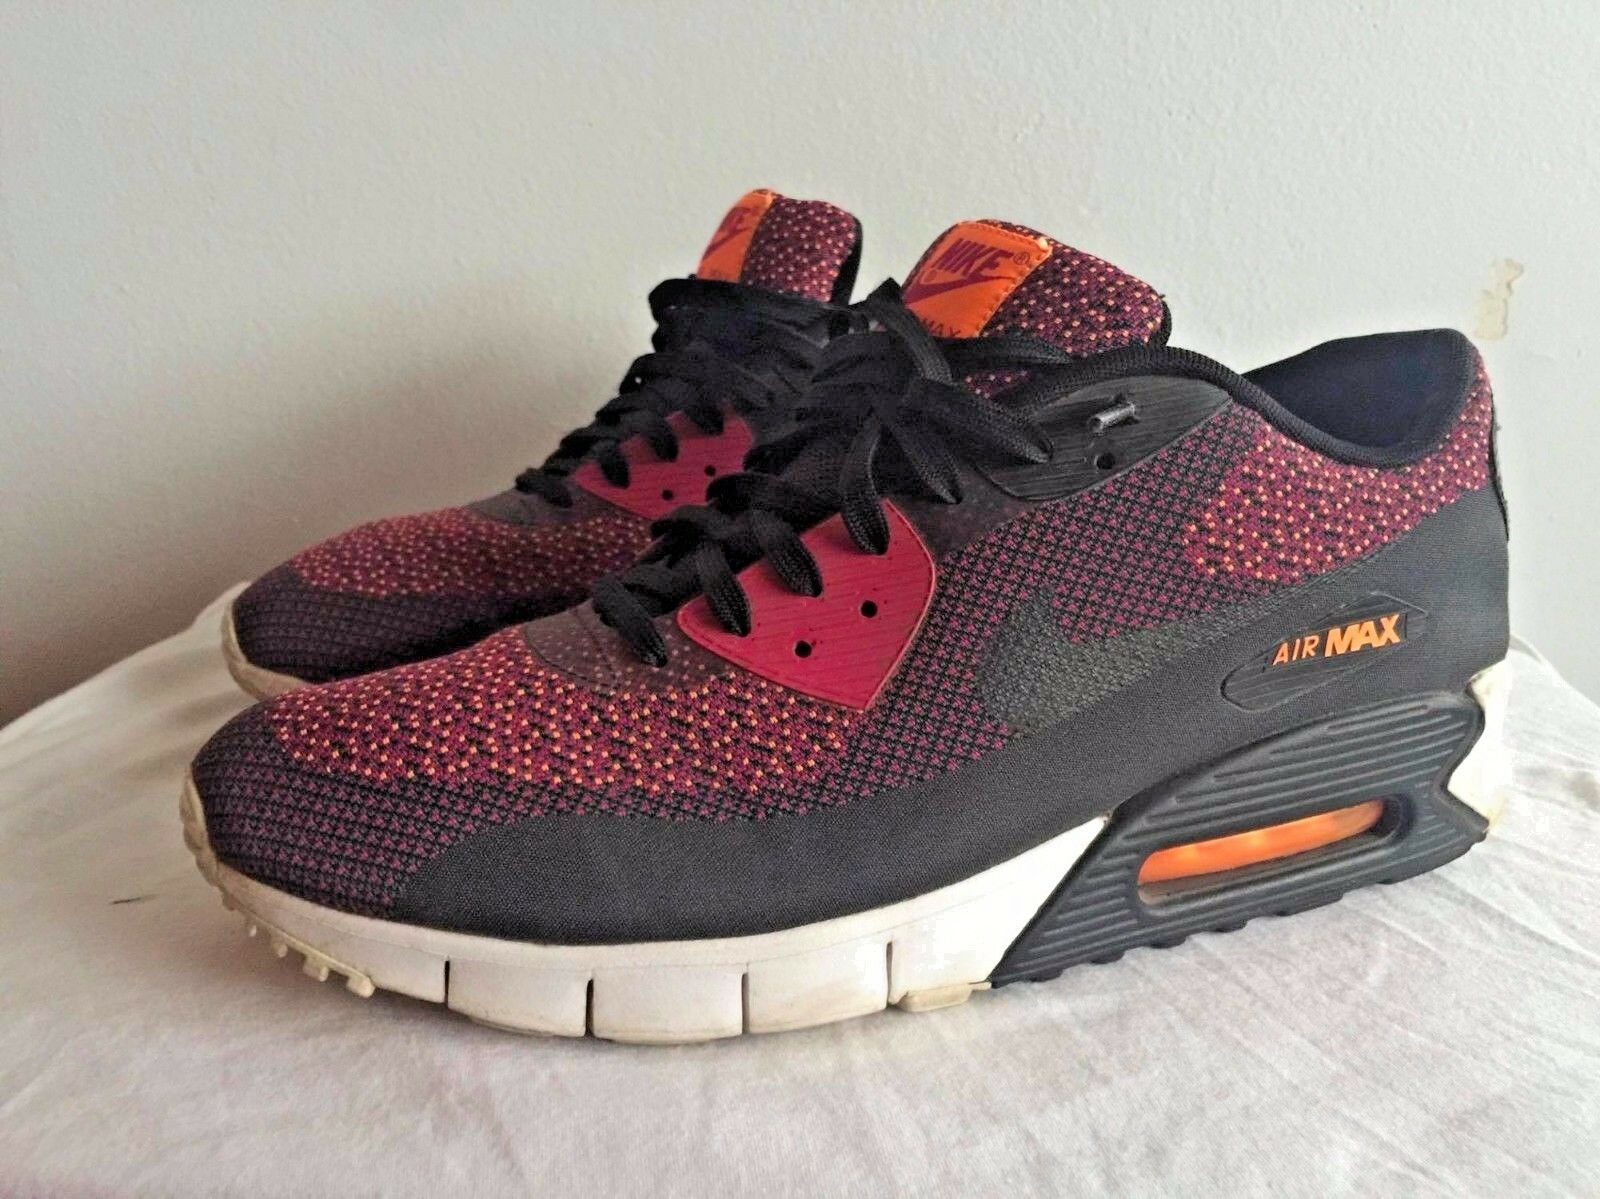 NIKE AIR MAX 90 JACQUARD MAGENTA BLACK orange ANTHRACITE Rare Size 13